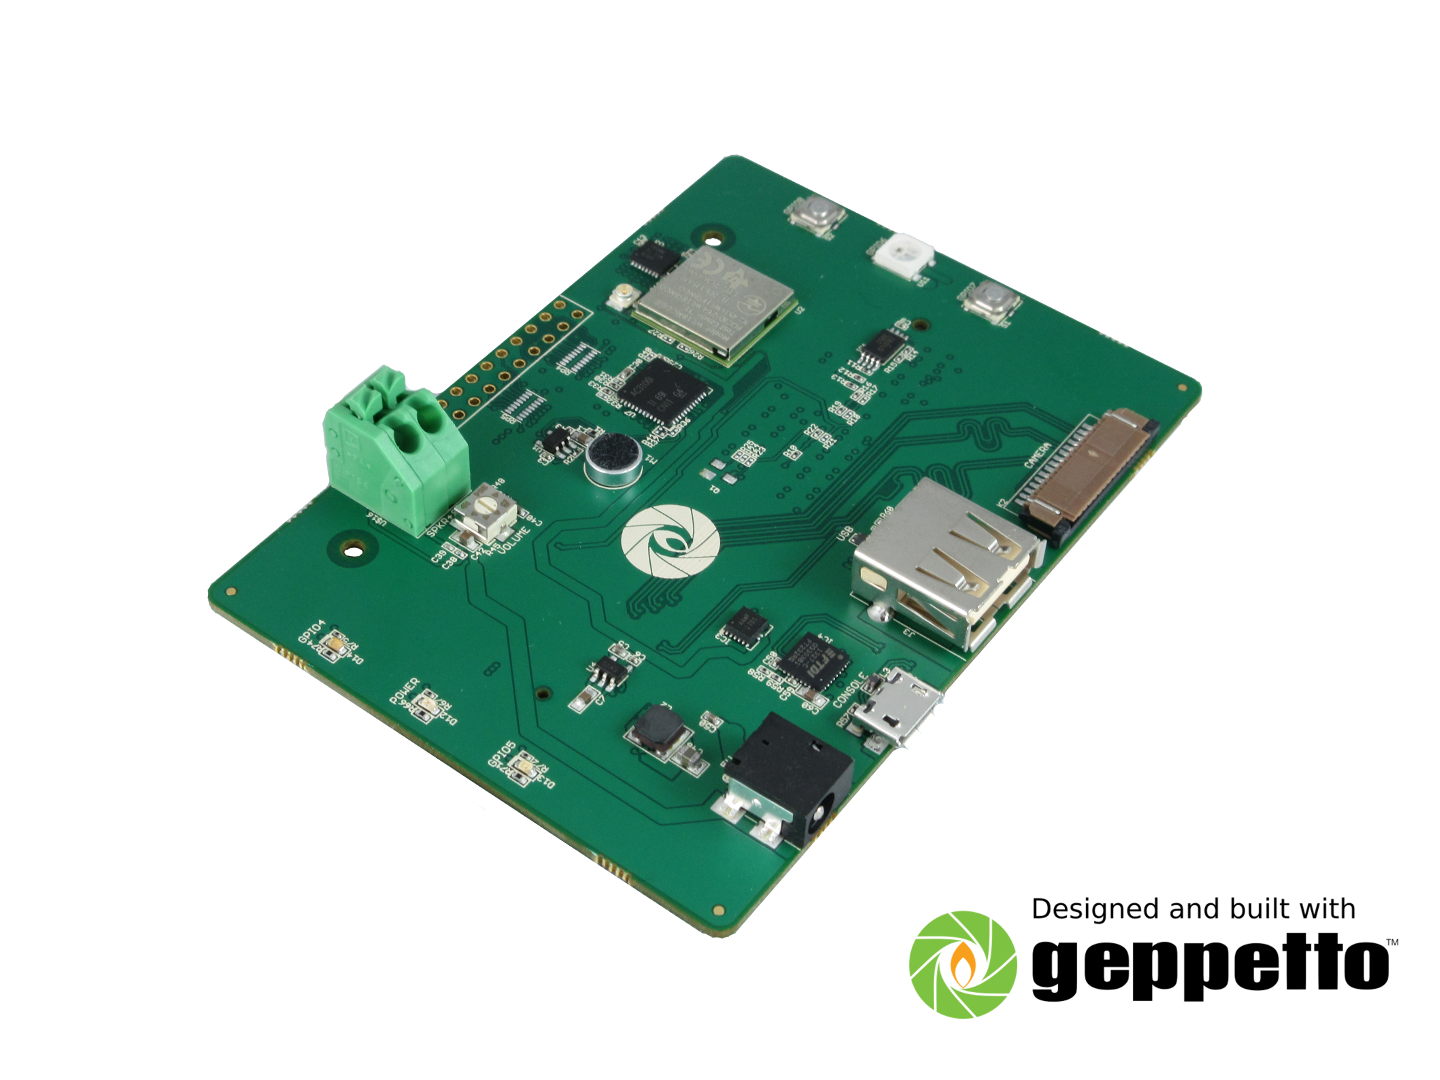 Gumstix iMX7 Chatterbox for Raspberry Pi compute module (Amazon Alexa Voice Service evaluation board) image